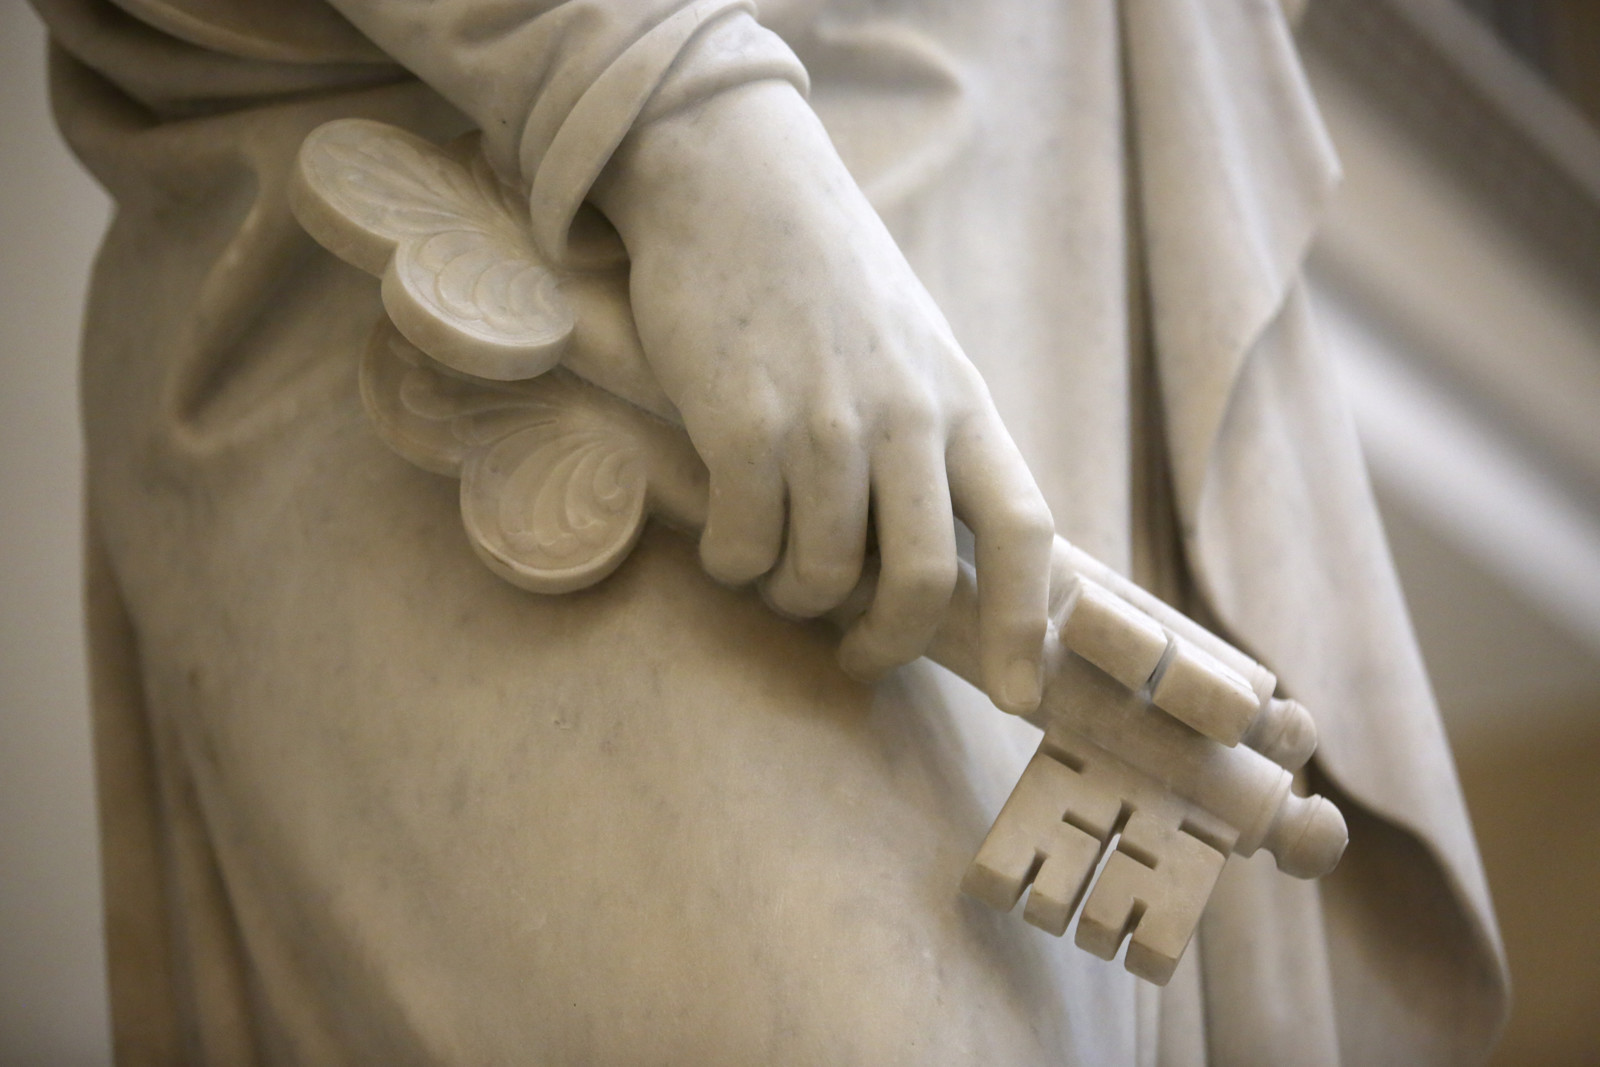 Close-up of the apostle Peter's keys in the Rome Temple Visitors' Center.